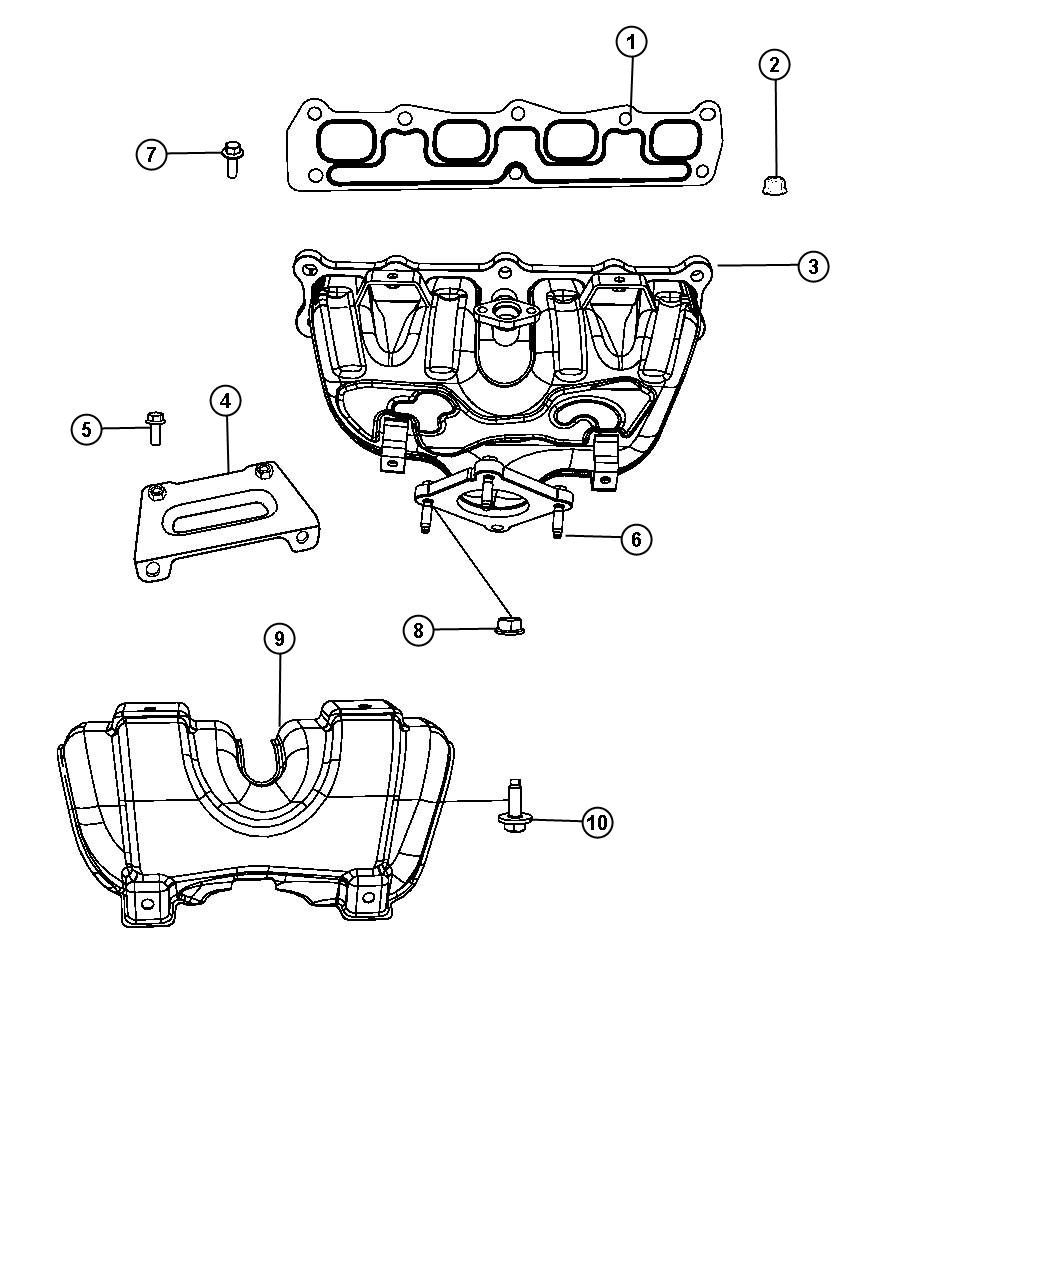 2007 dodge caliber remote starter wiring diagram